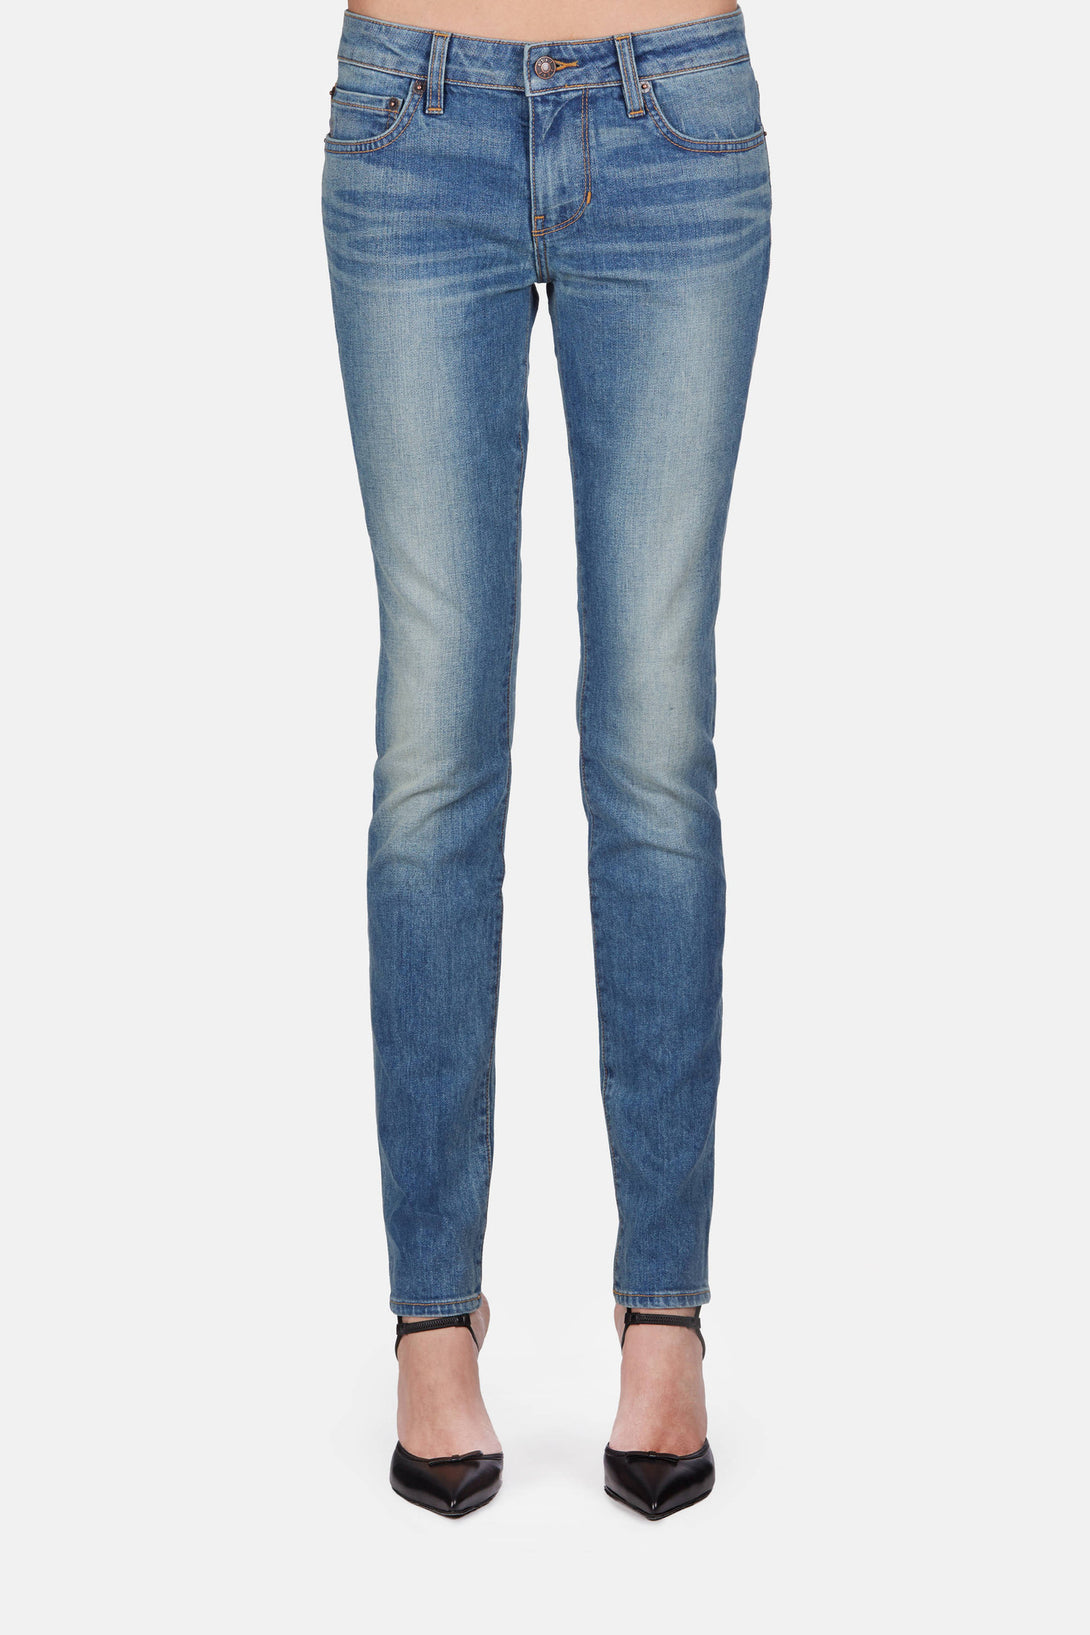 Skinny Jeans - Thrift Store Blue